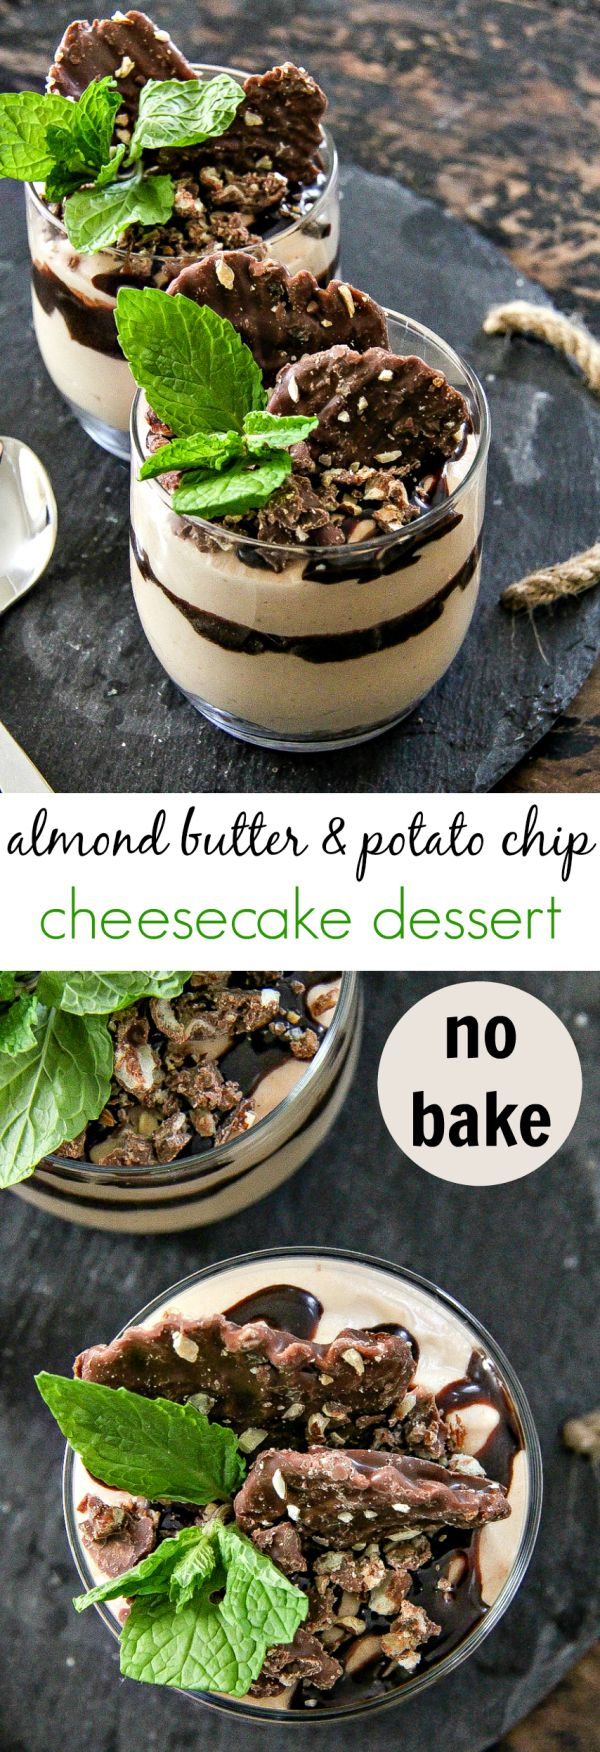 Make this almond butter and potato chip no bake cheesecake recipe. You won't be sorry. It's perfect for holiday entertaining. #SweetnSaltyHoliday #ad